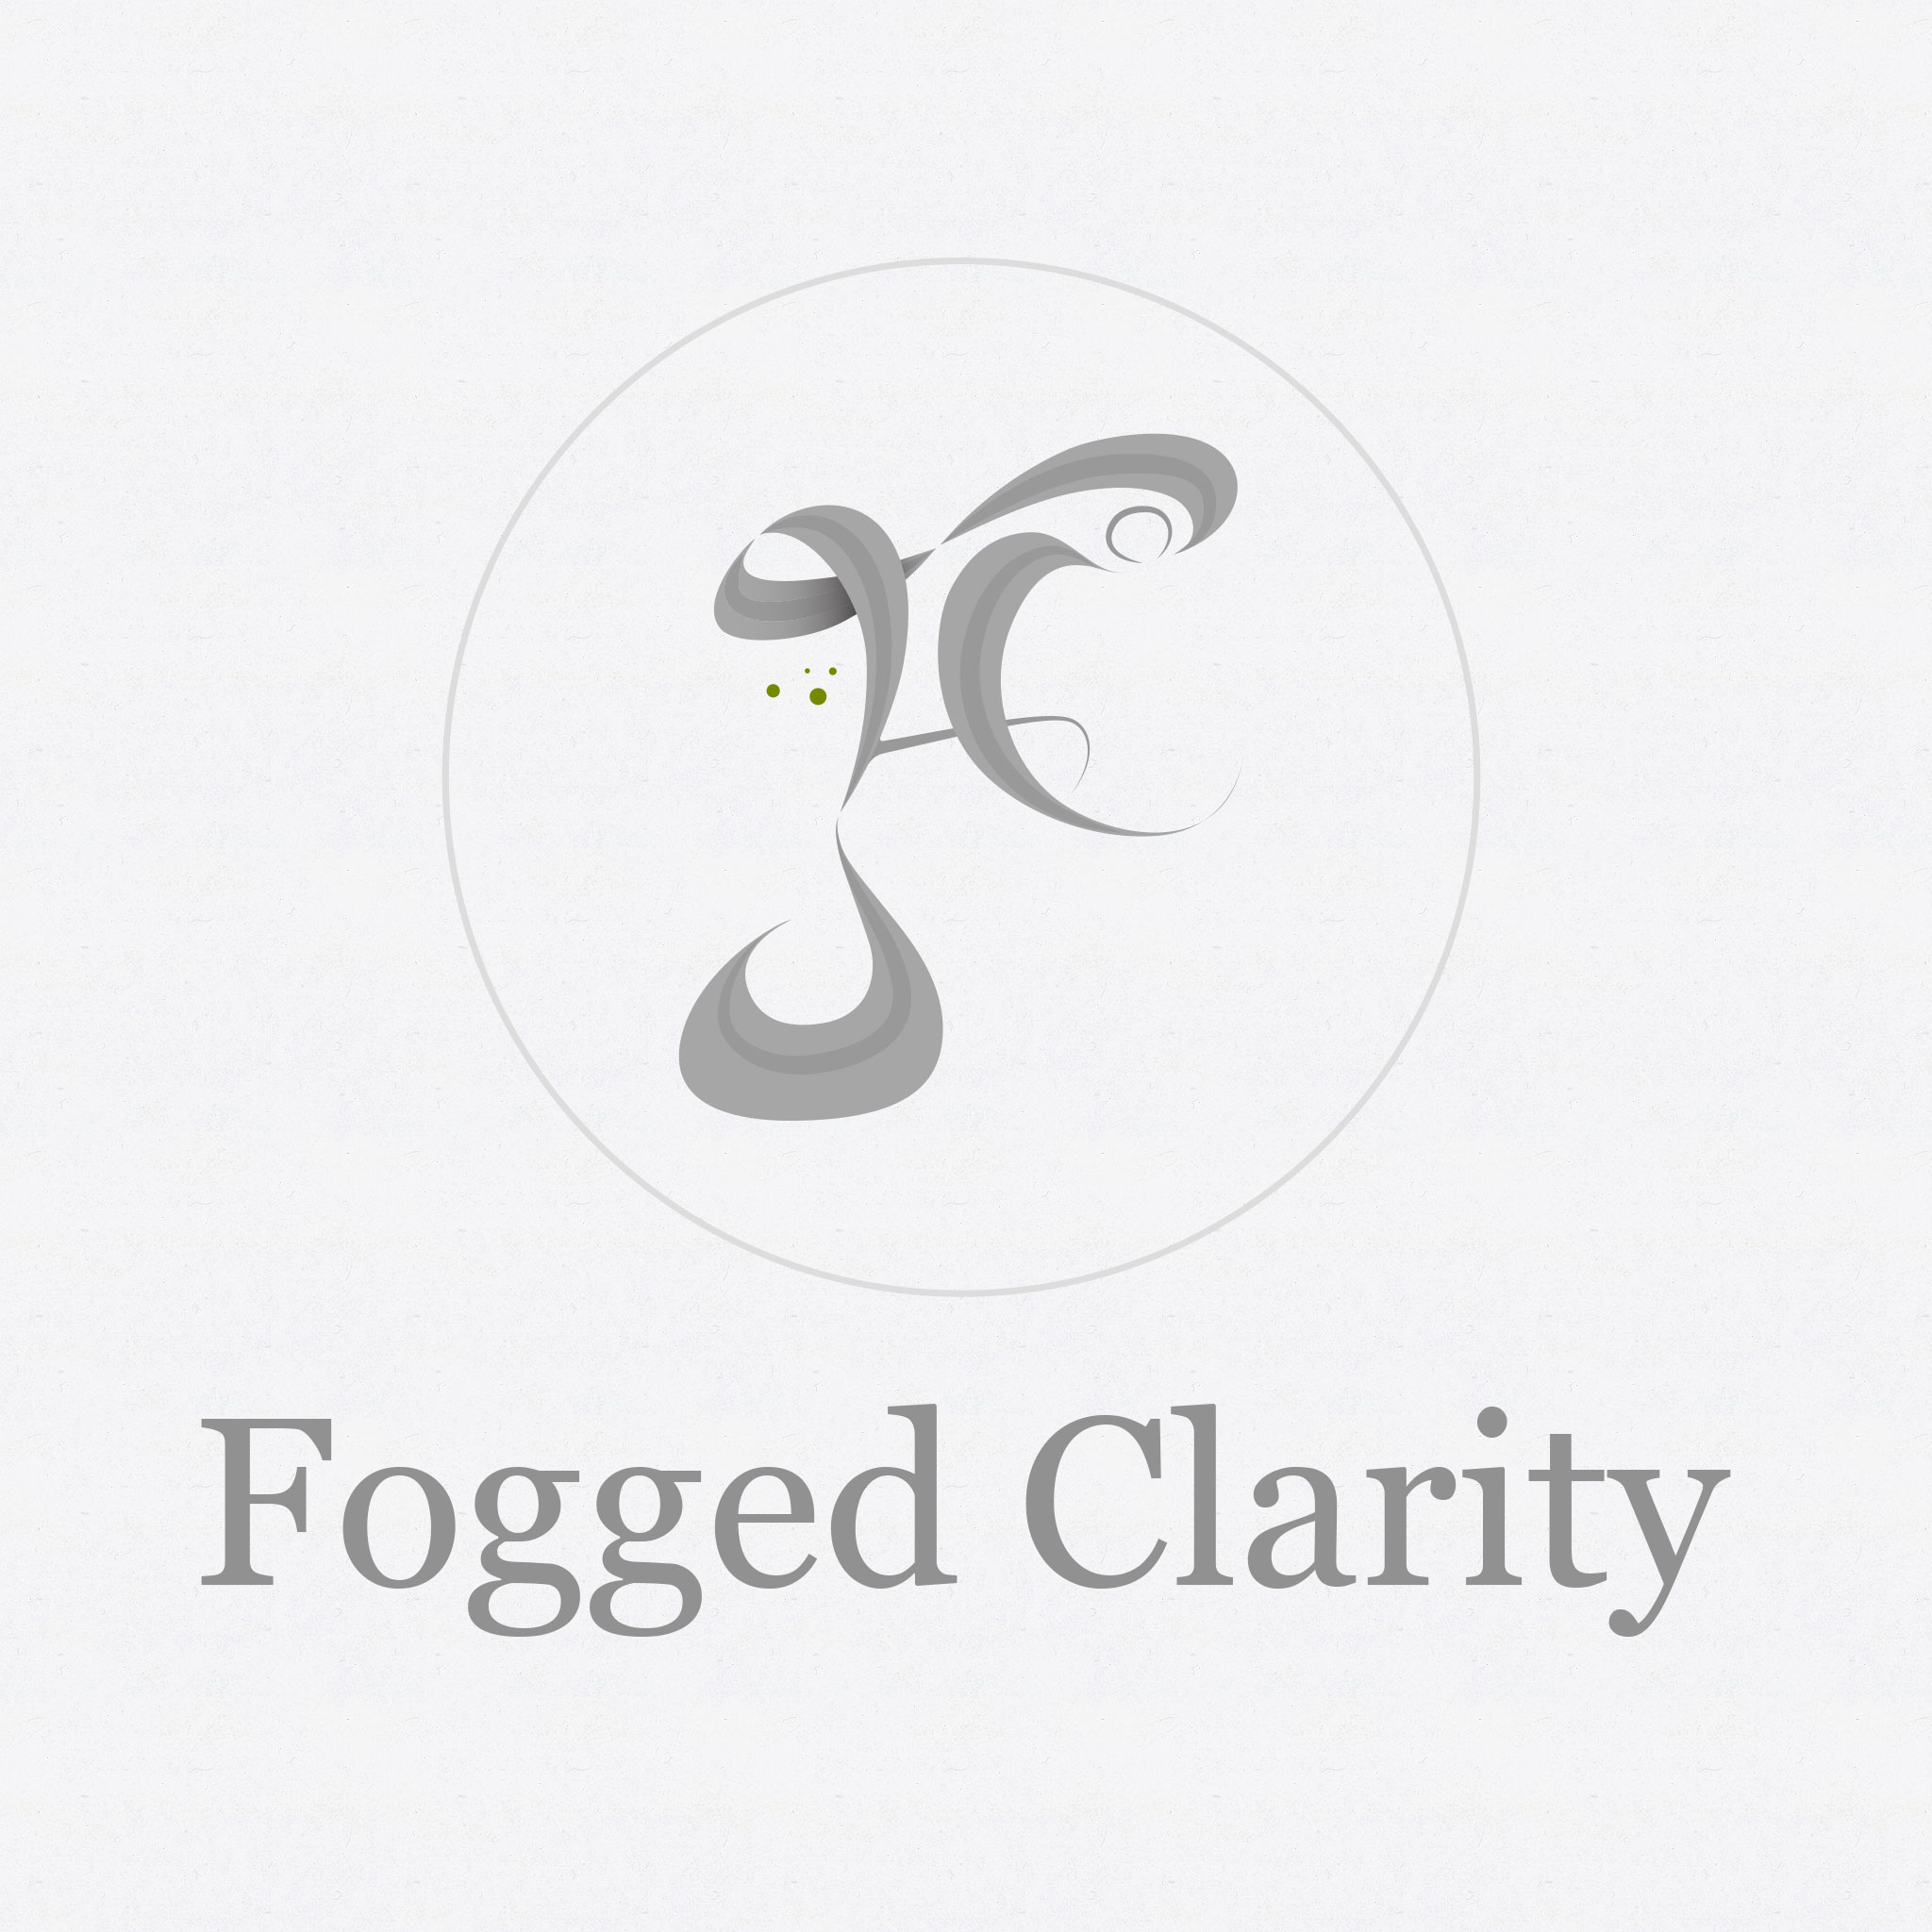 Fogged Clarity Podcast